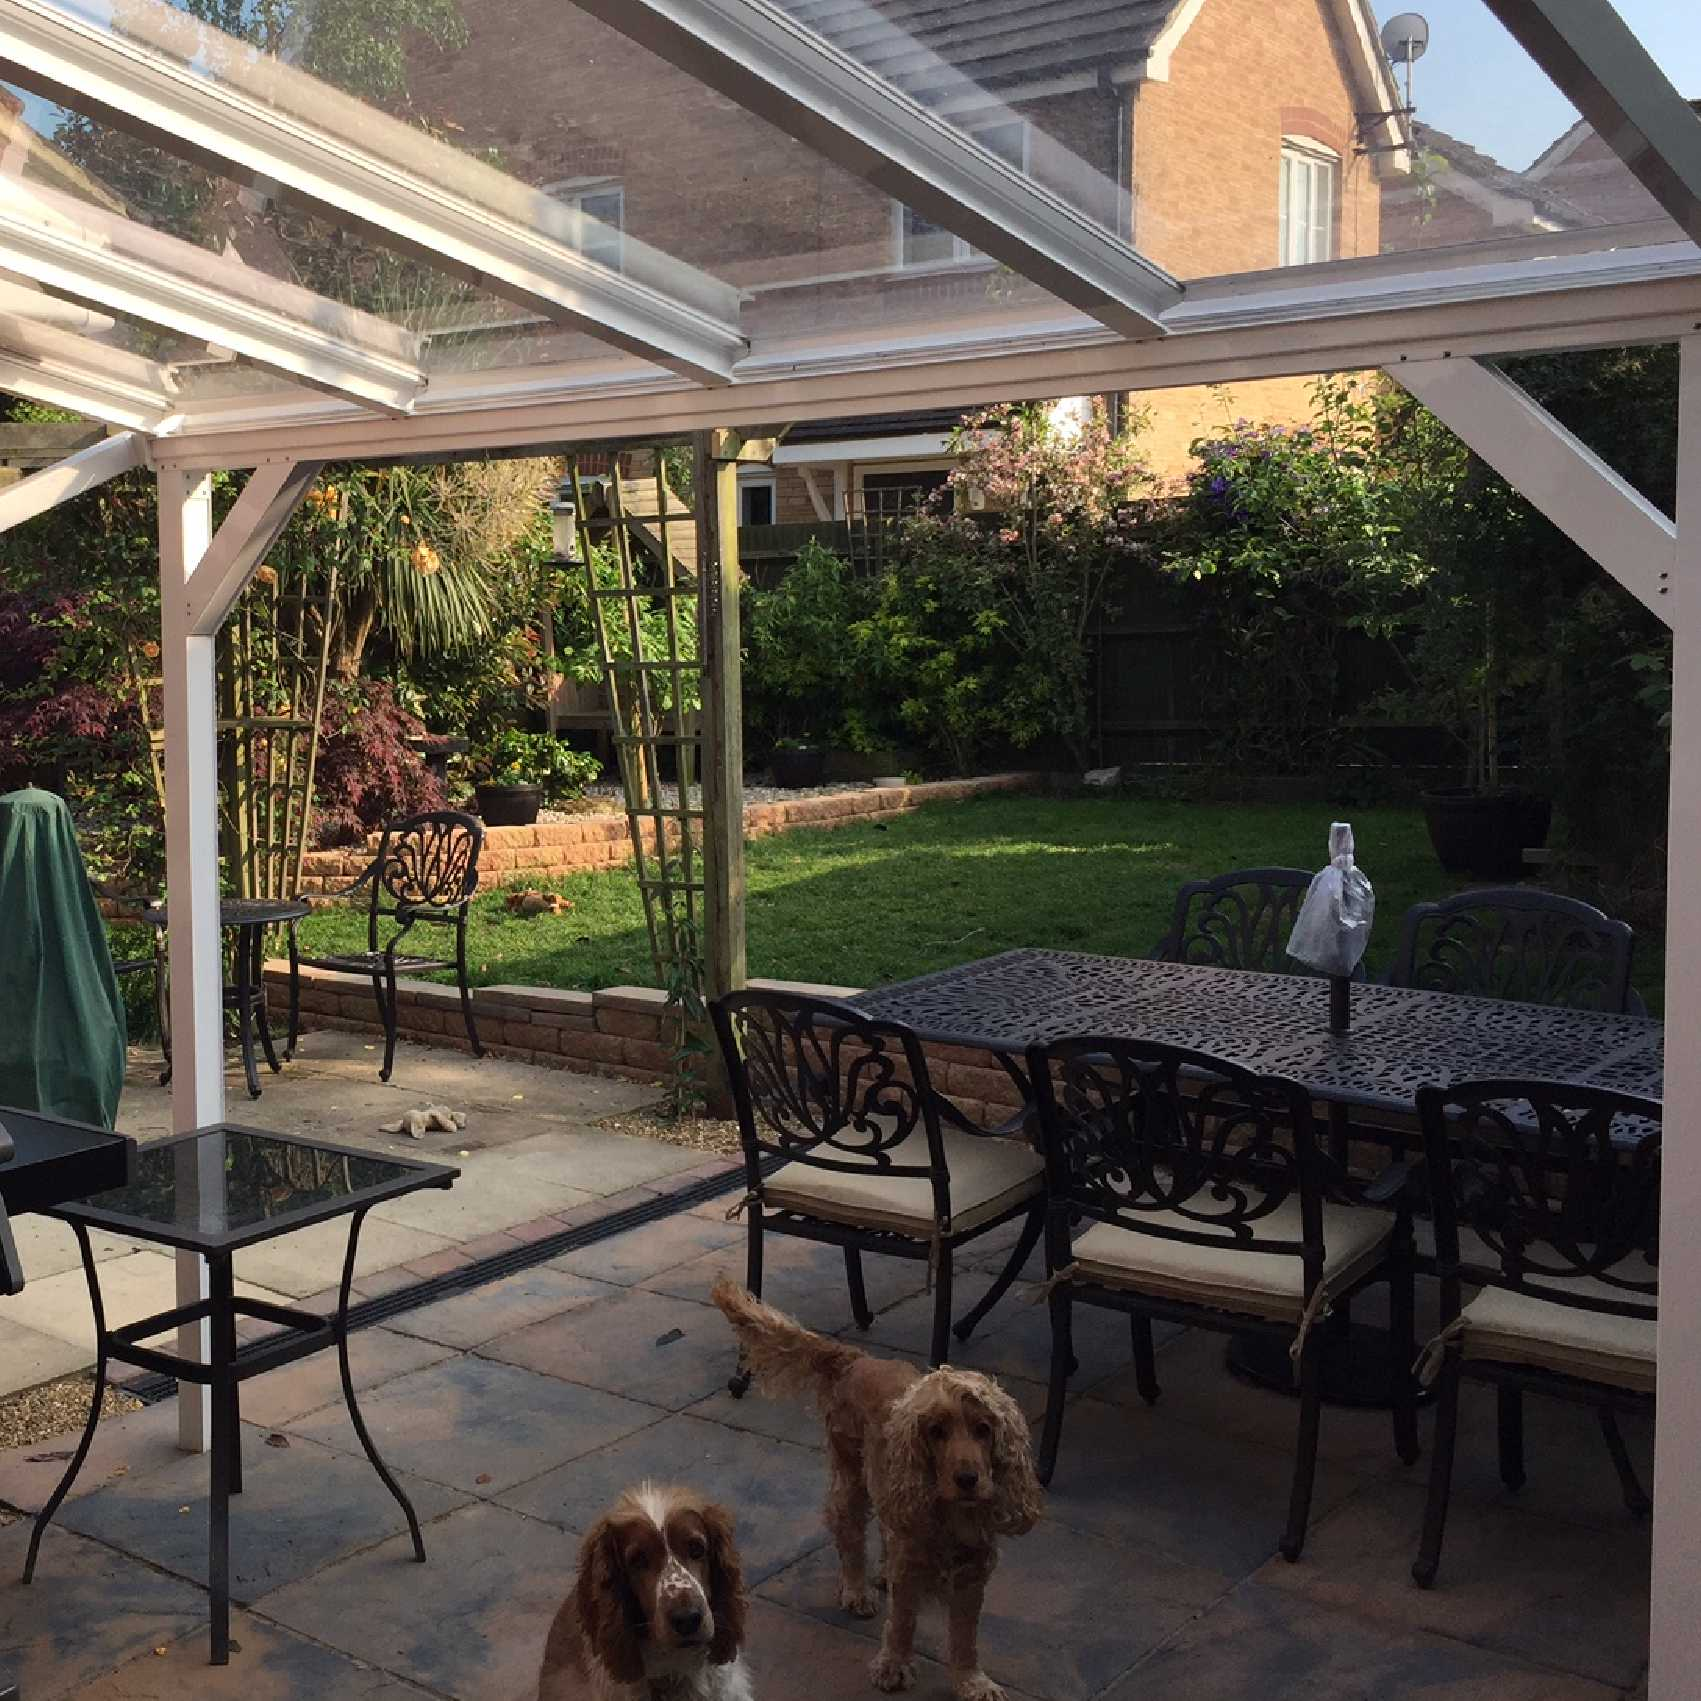 Affordable Omega Smart White Lean-To Canopy UNGLAZED for 6mm Glazing - 7.7m (W) x 2.0m (P), (4) Supporting Posts